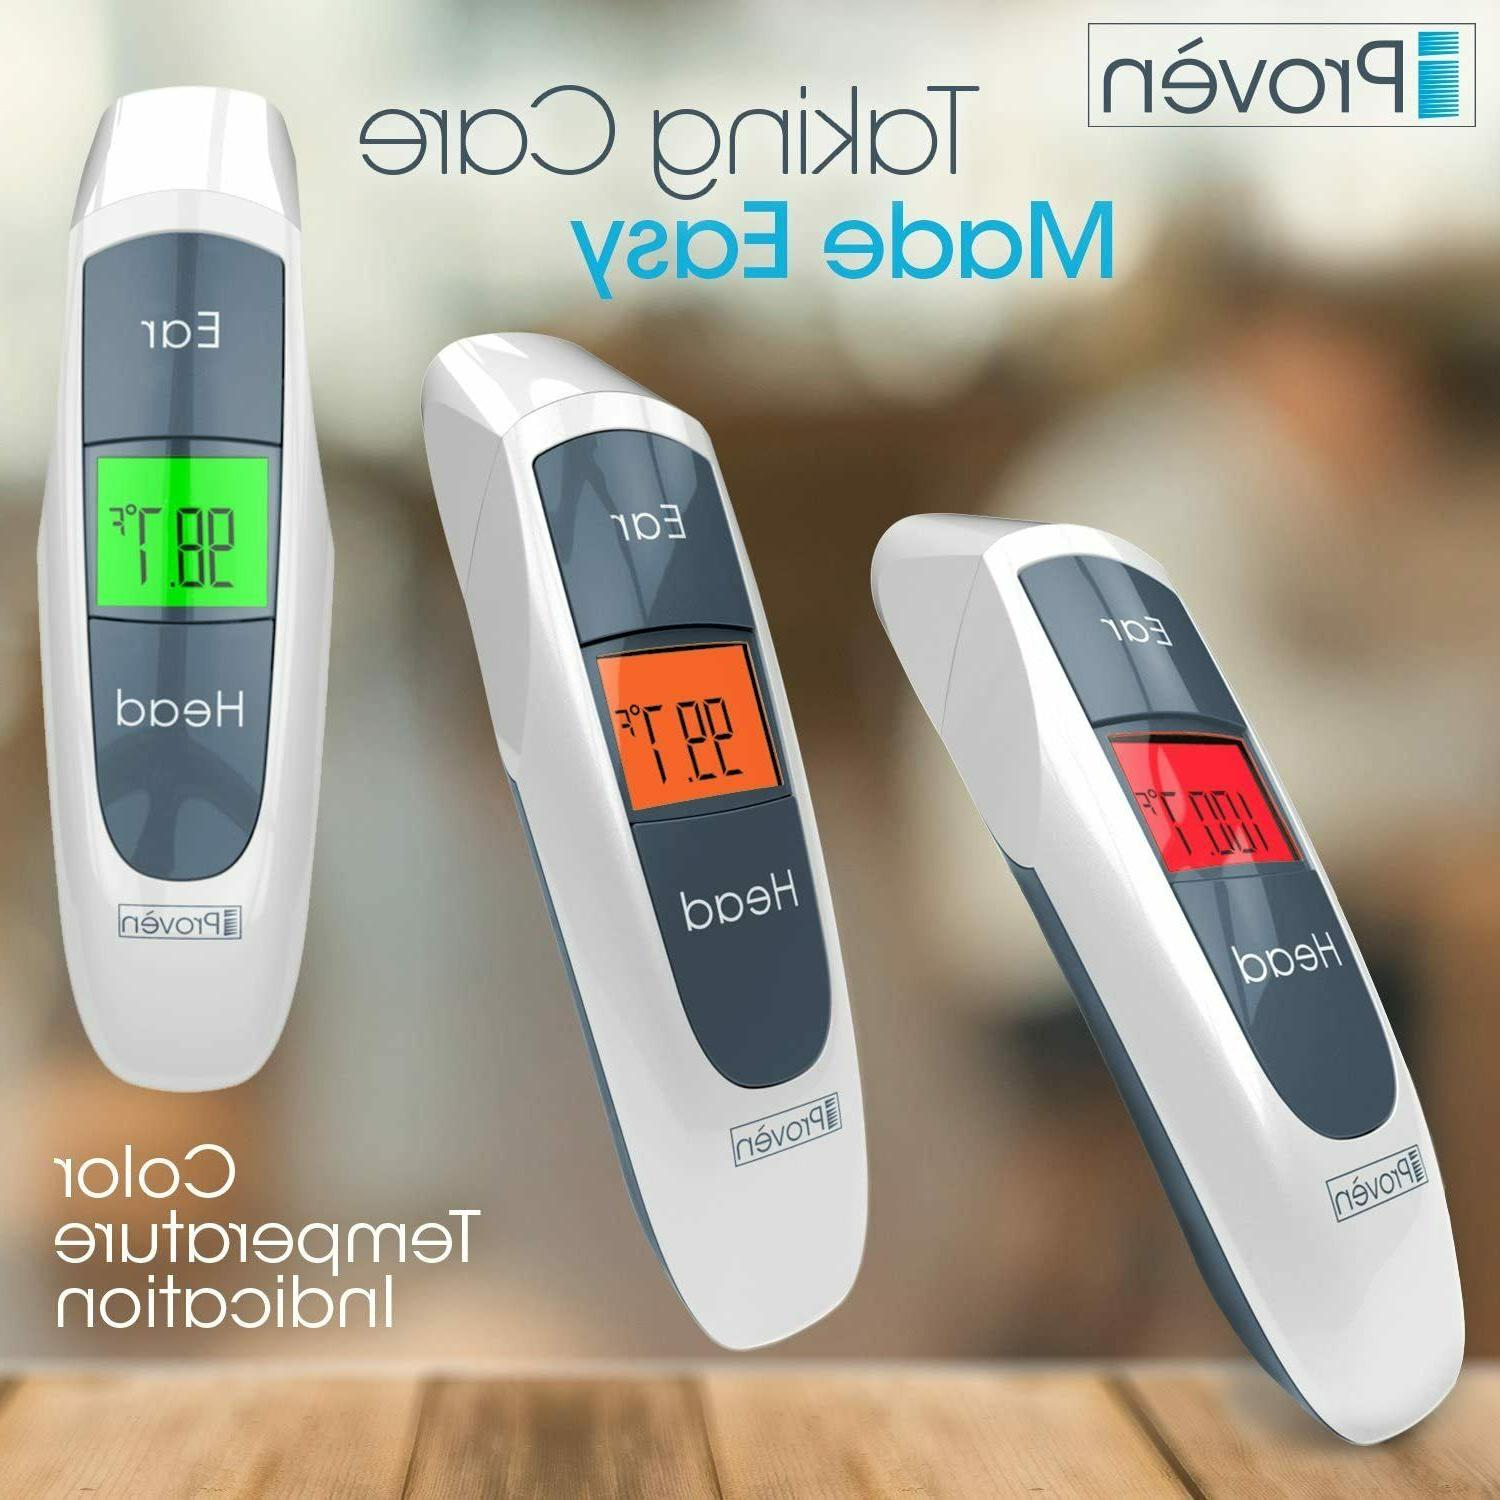 i dmt 316 dual mode thermometer